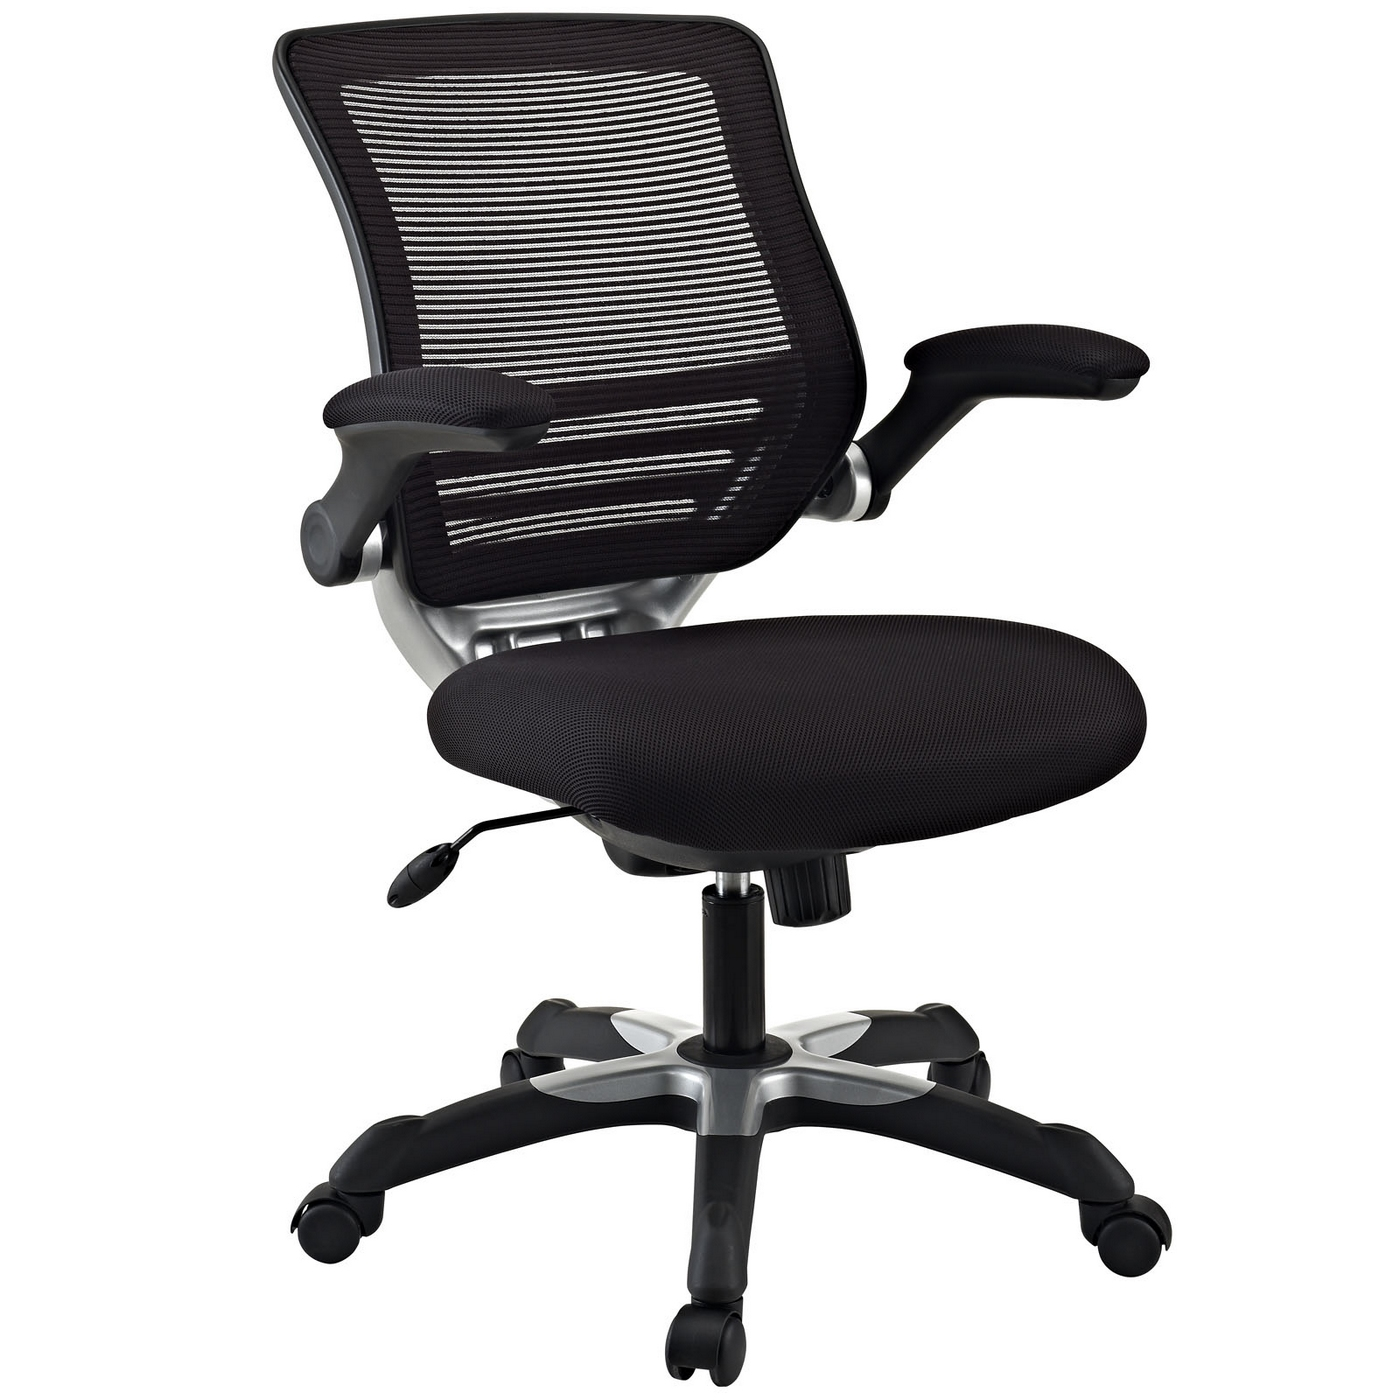 Mesh Ergonomic Office Chair Edge Modern Adjustable Ergonomic Mesh Office Chair Black